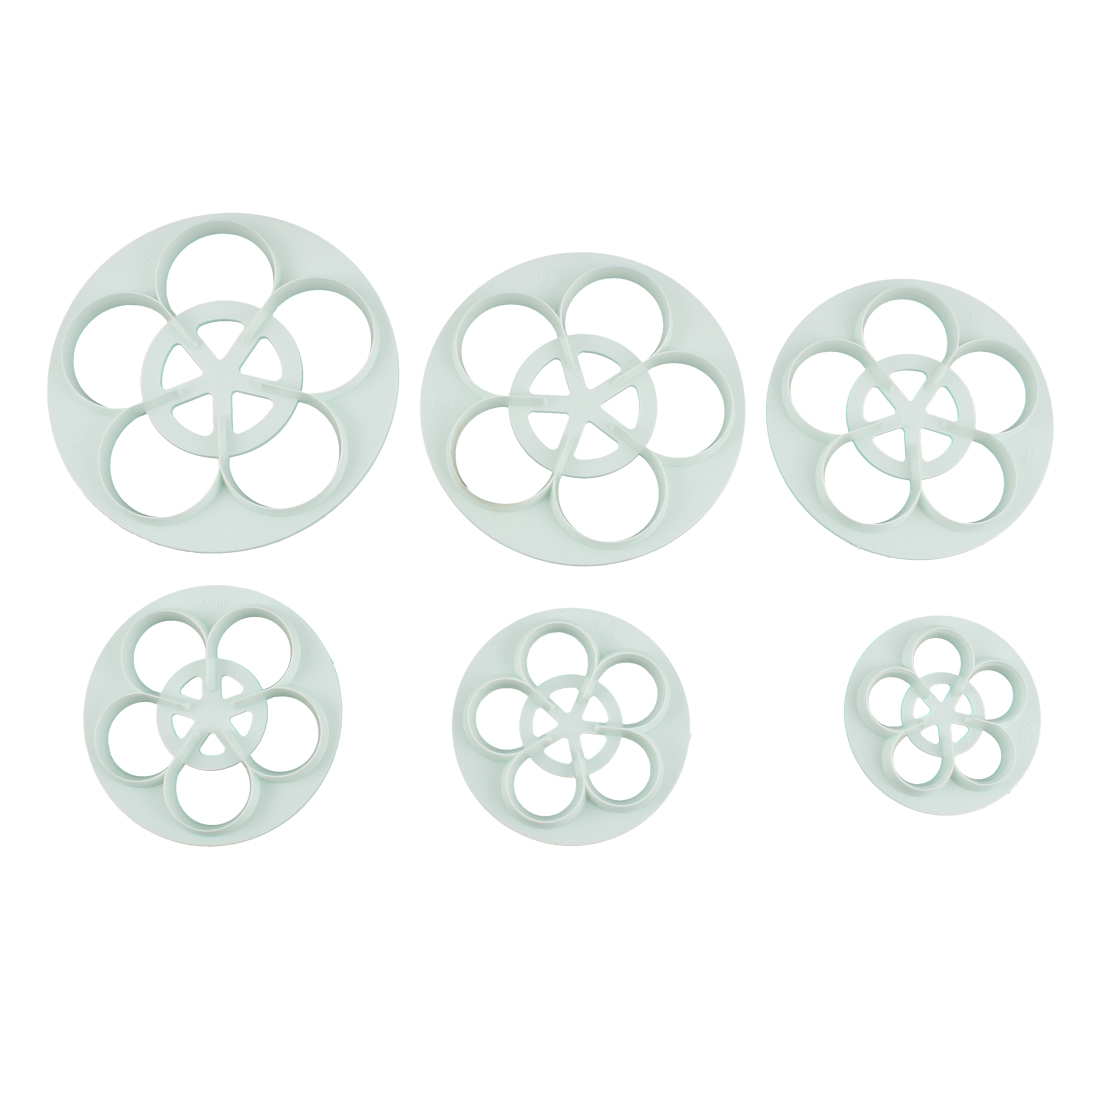 Flower Shape DIY Cake Cookies Decorating Cutter Plastic Baking Molds Embossing Tool Set 6 in 1